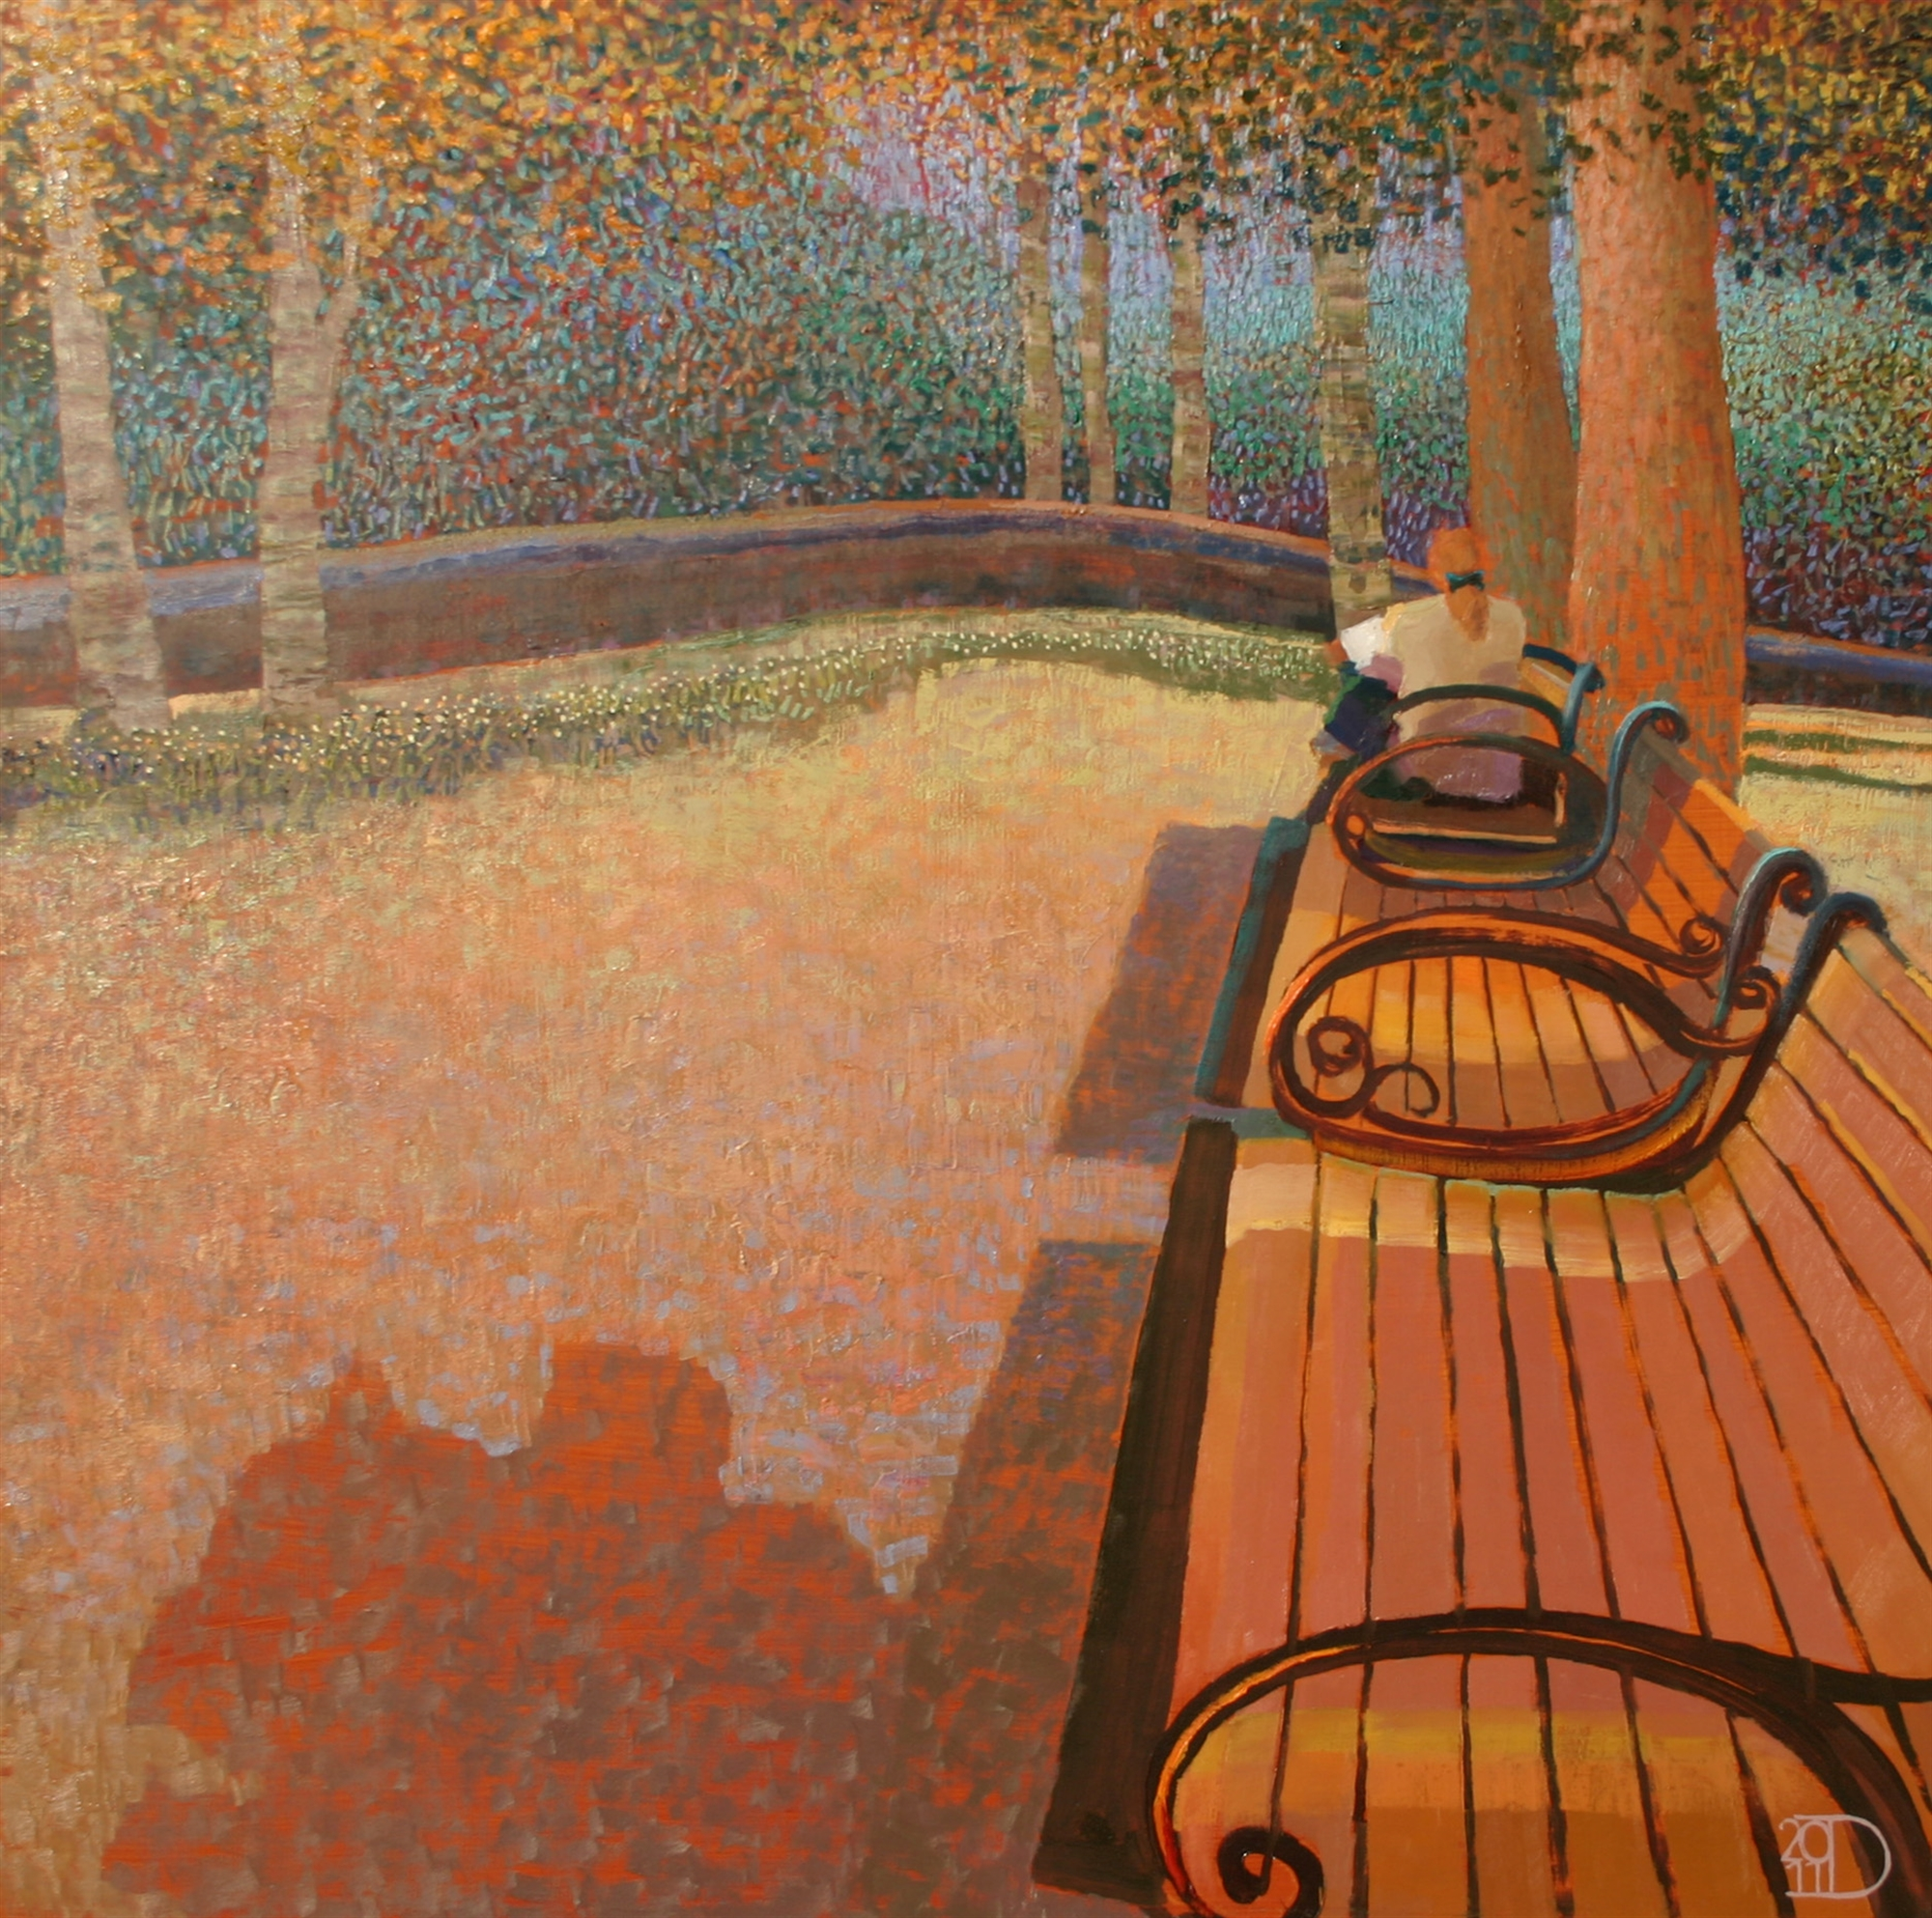 Afternoon in the Park by Ton Dubbeldam